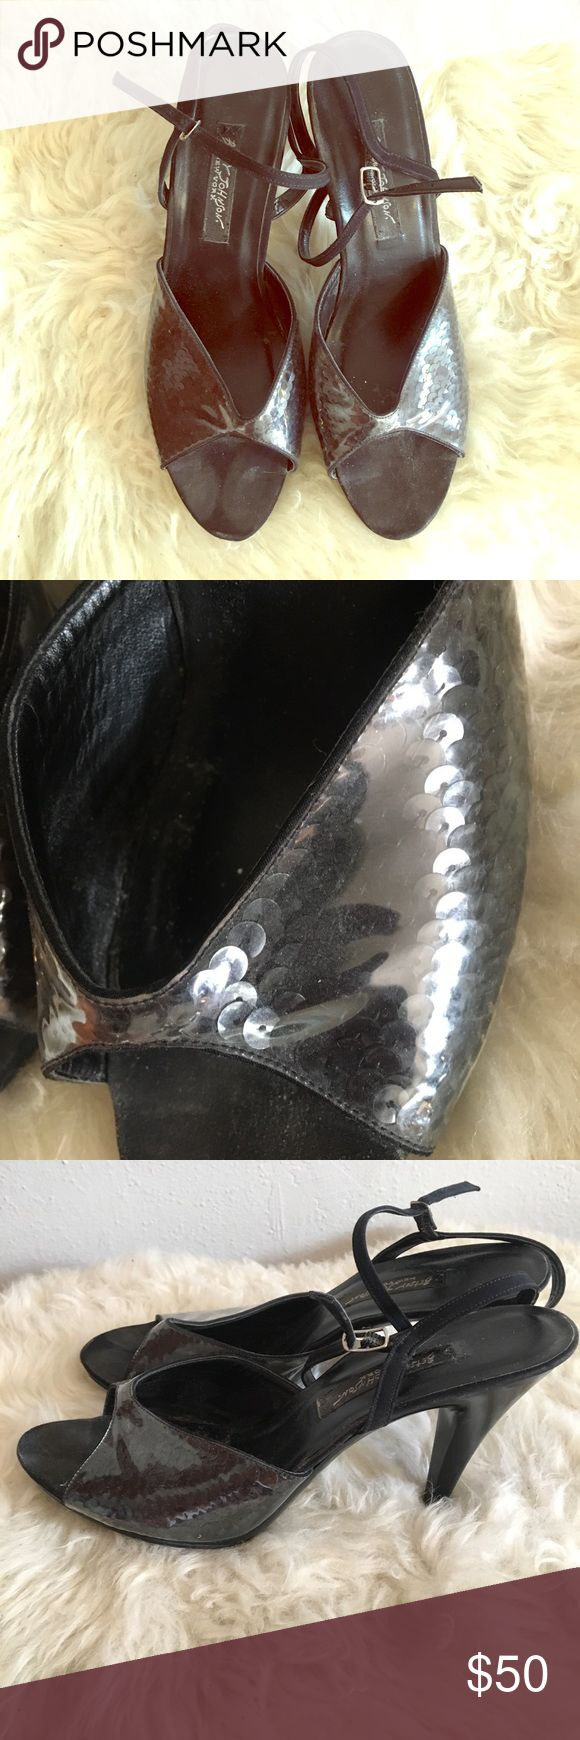 """Vintage Betsy Johnson Blk Sequin strapy 👠Sexy&Fun Vintage Betsy Johnson Blk Sequin strapy heels. Vet Sexy & Fun. Previously worn but overall great condition, see pics. Size 8.5 with approximately a 4"""" heel. Betsey Johnson Shoes Heels"""